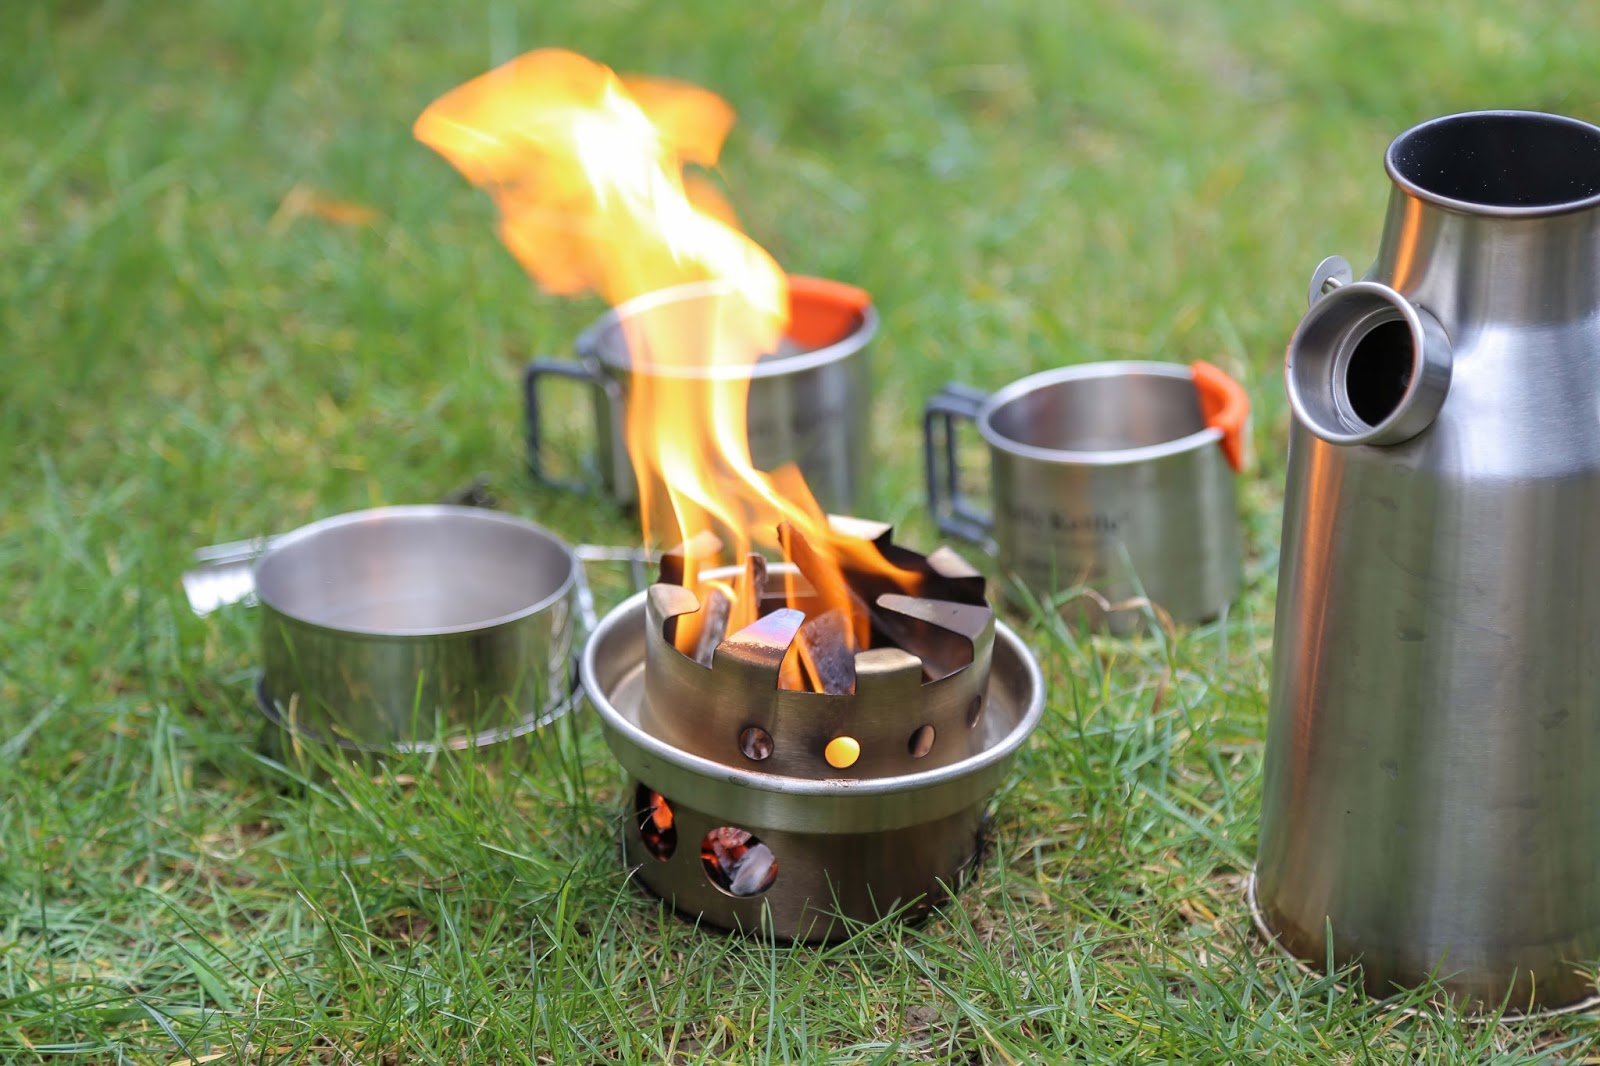 Outdoorküche Garten Edelstahl Test : Kelly kettle sturmkanne trekker kettle set review u test